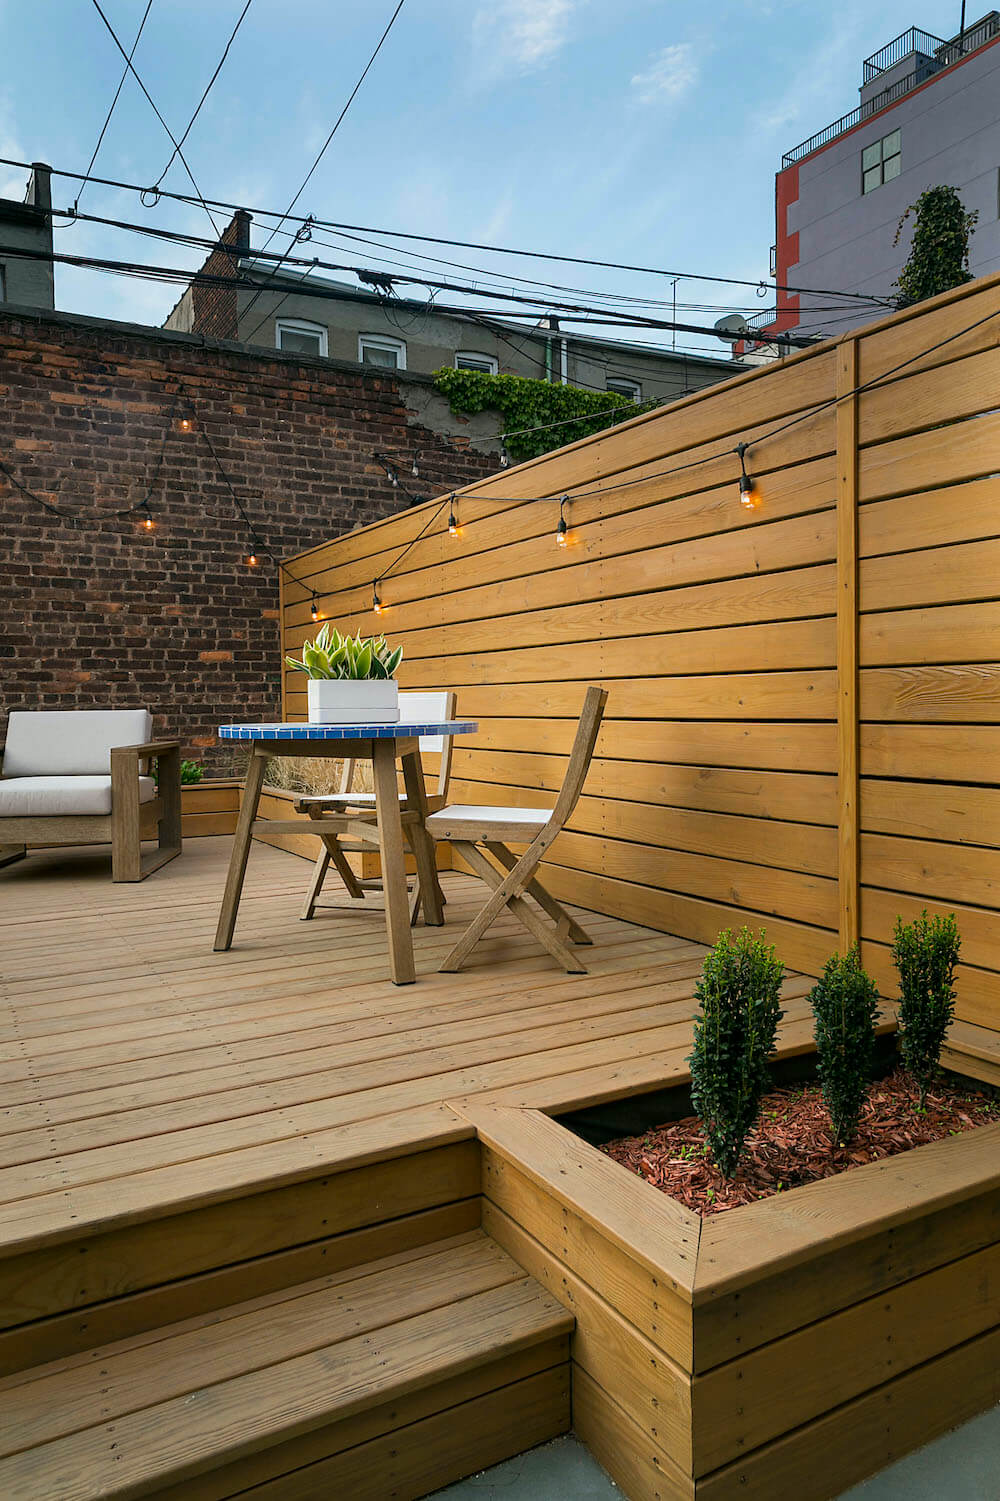 Image of a renovated backyard with wooden walls and built-in planters